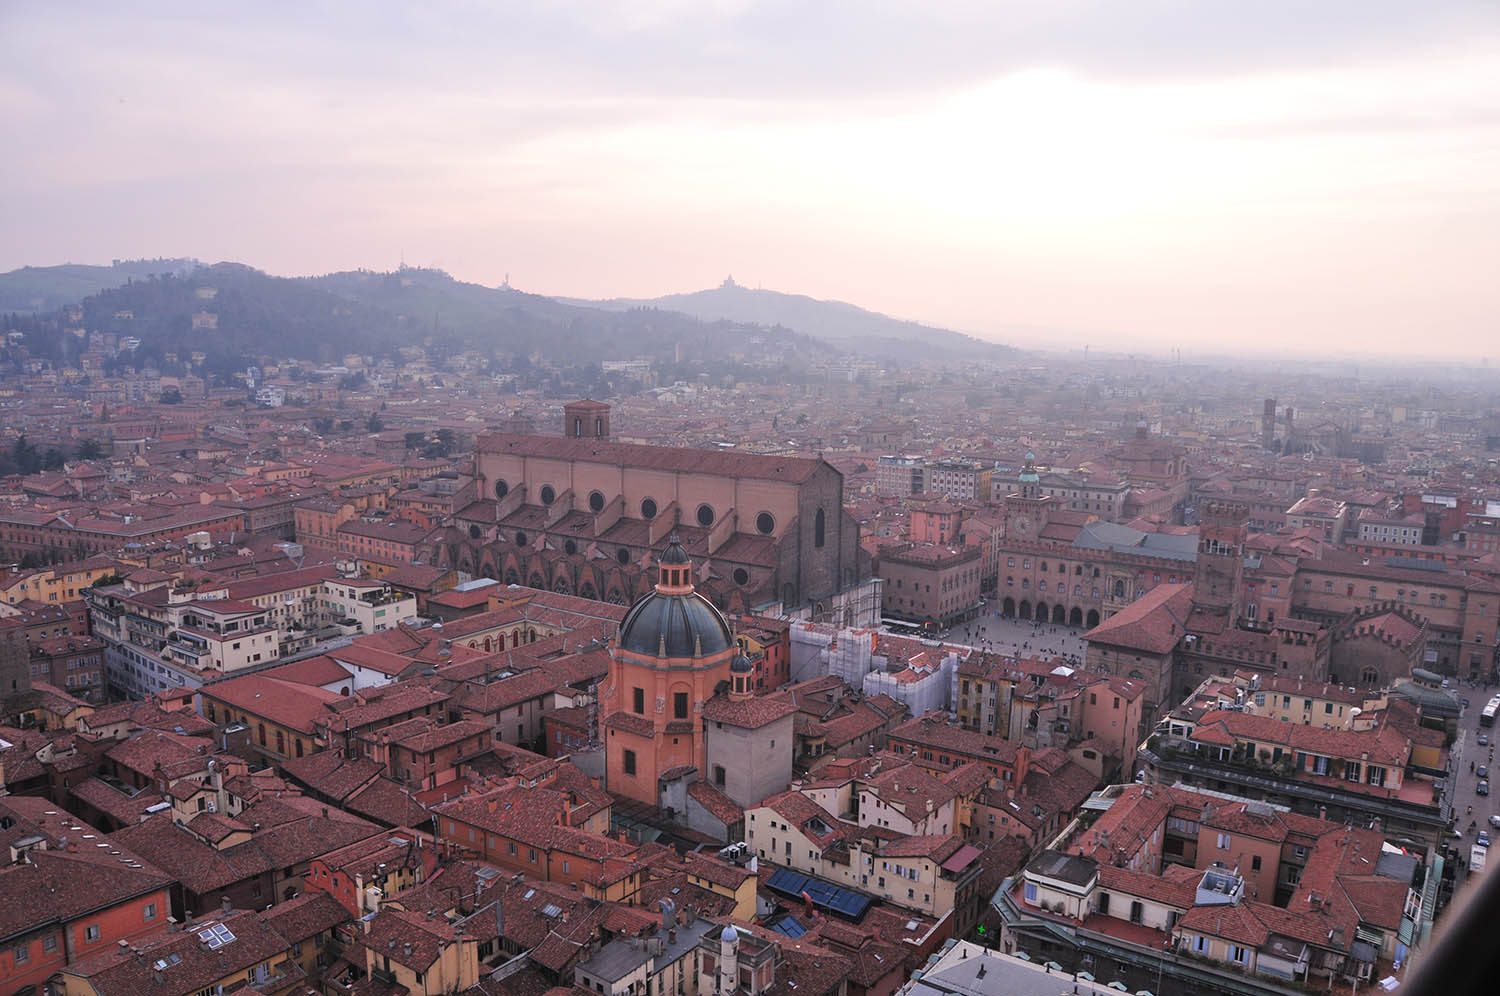 Reusing historical buildings for new purposes - an urban planning approach known as adaptive reuse - is breathing new life into cities like Bologna. Image credit - Flickr/ Yuri Virovets, licensed under CC BY 2.0